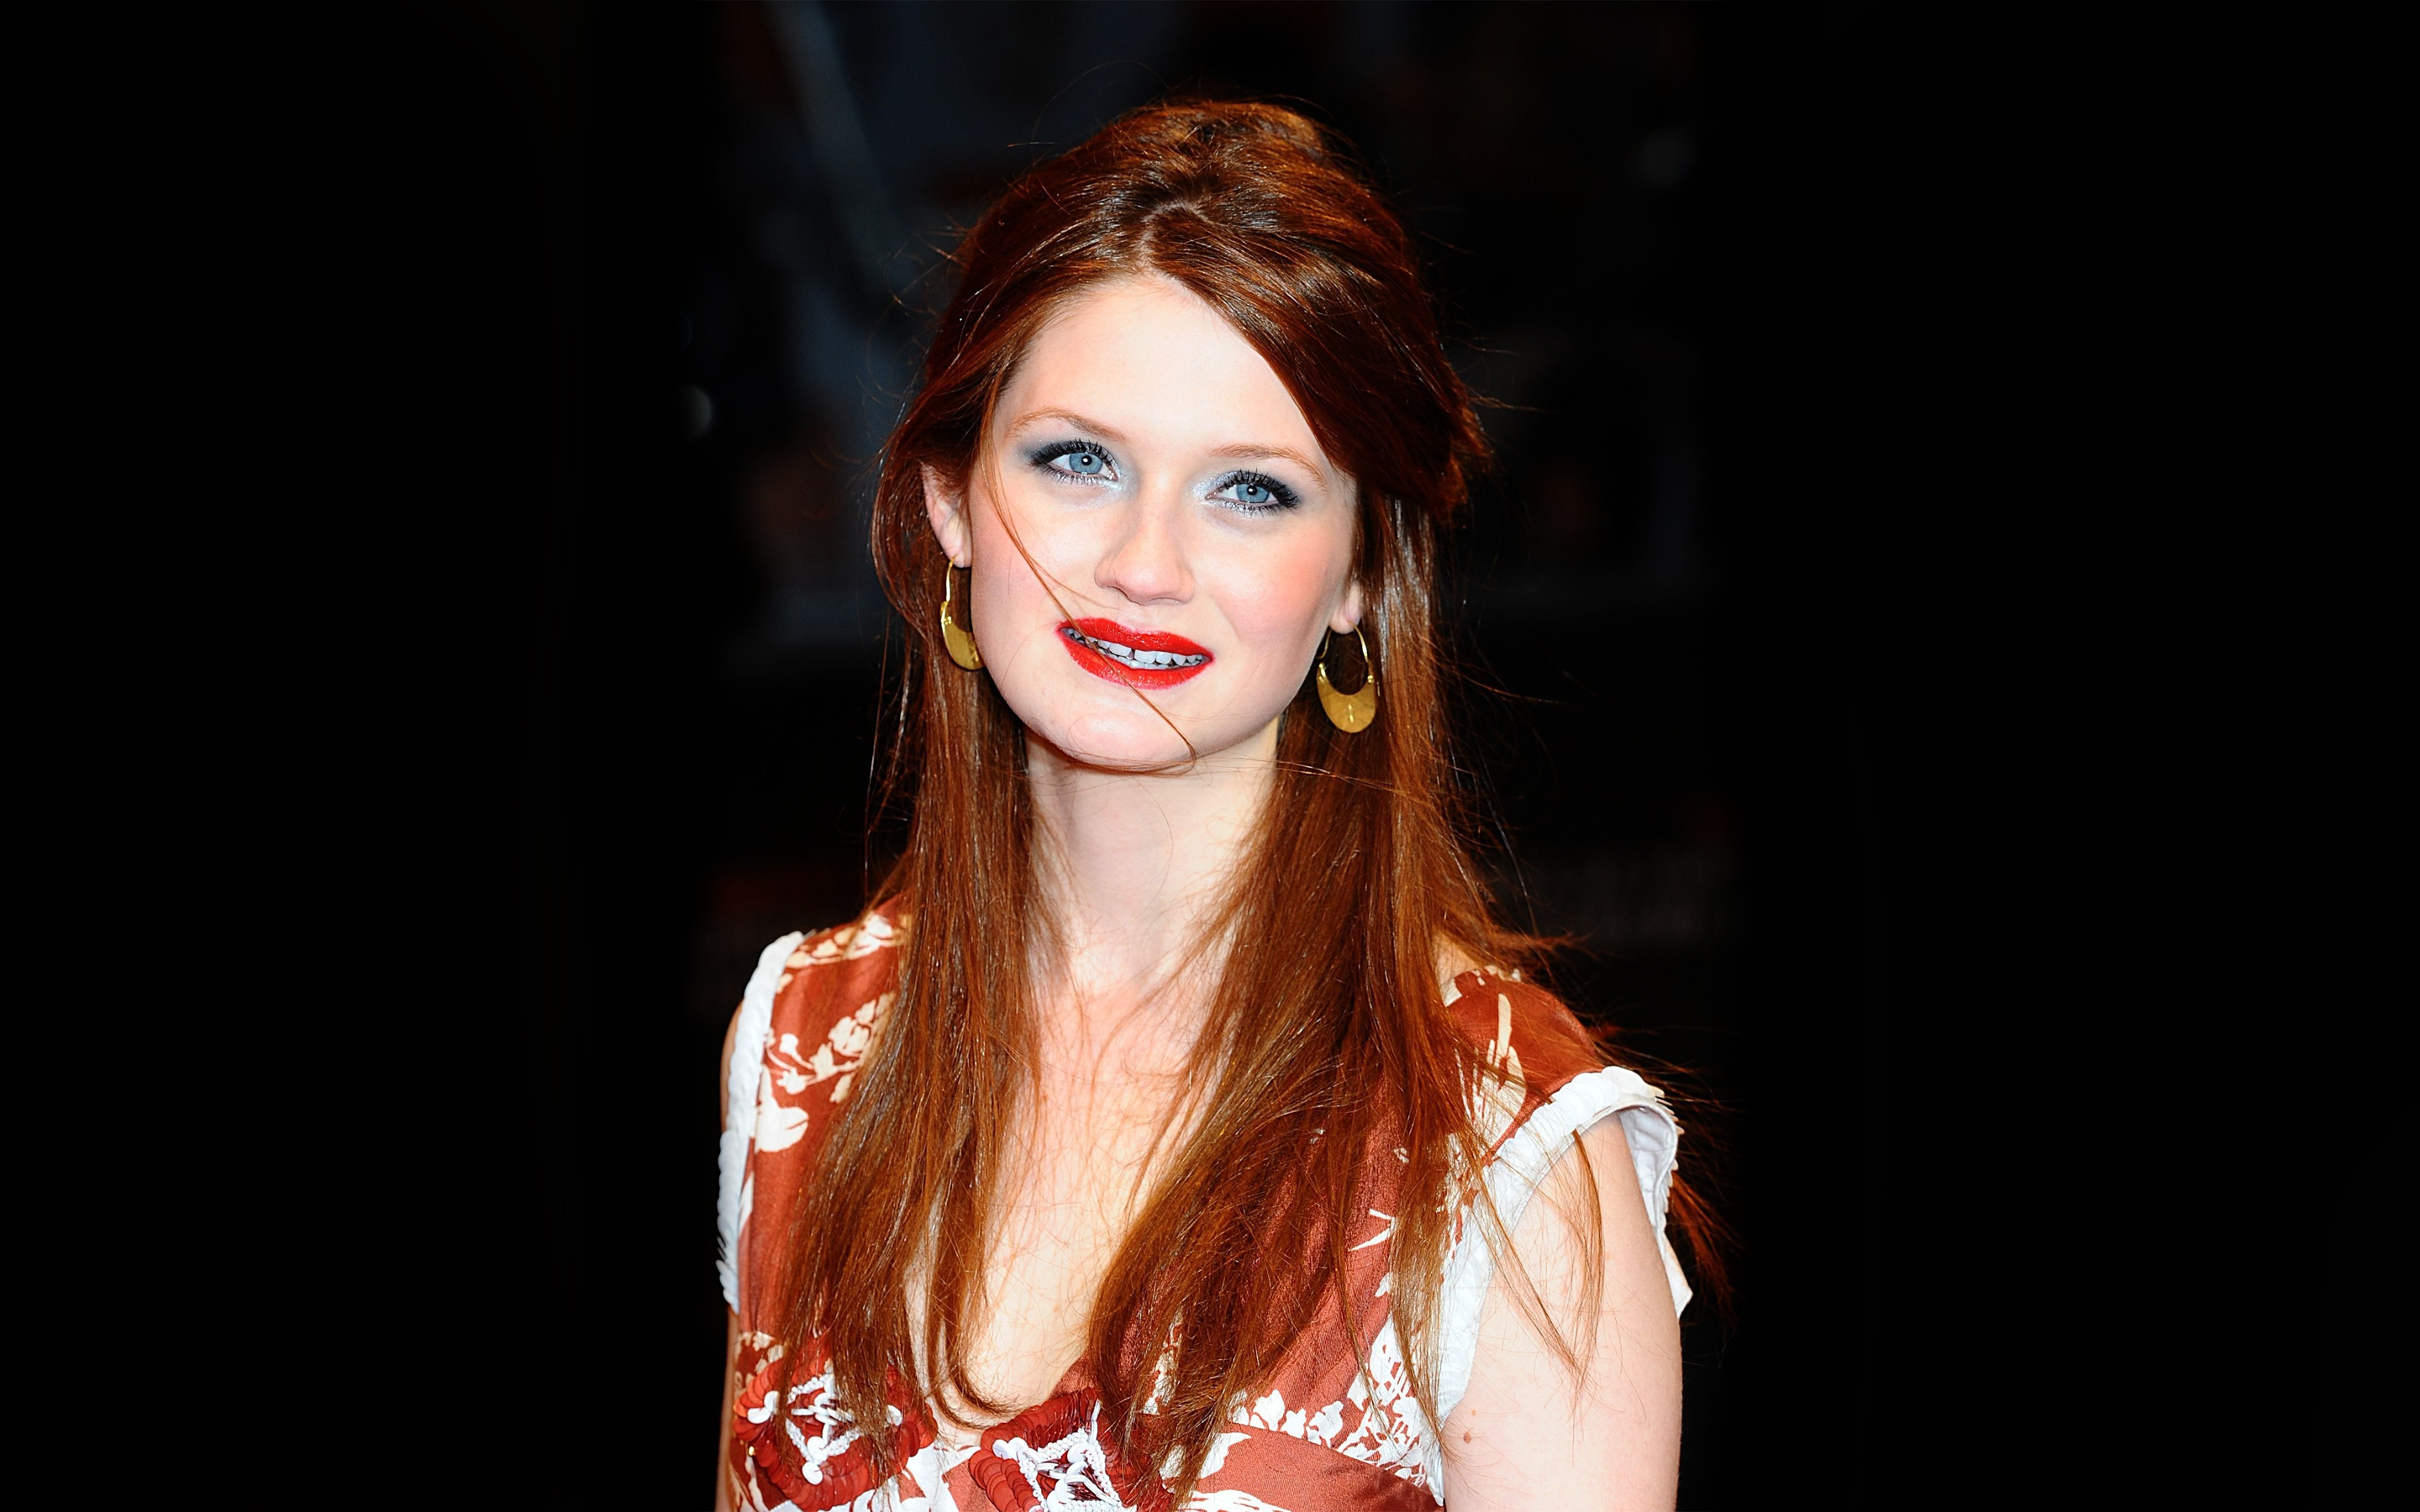 Bonnie Wright Hot Bikini Wallpapers, Sexy Topless Pics